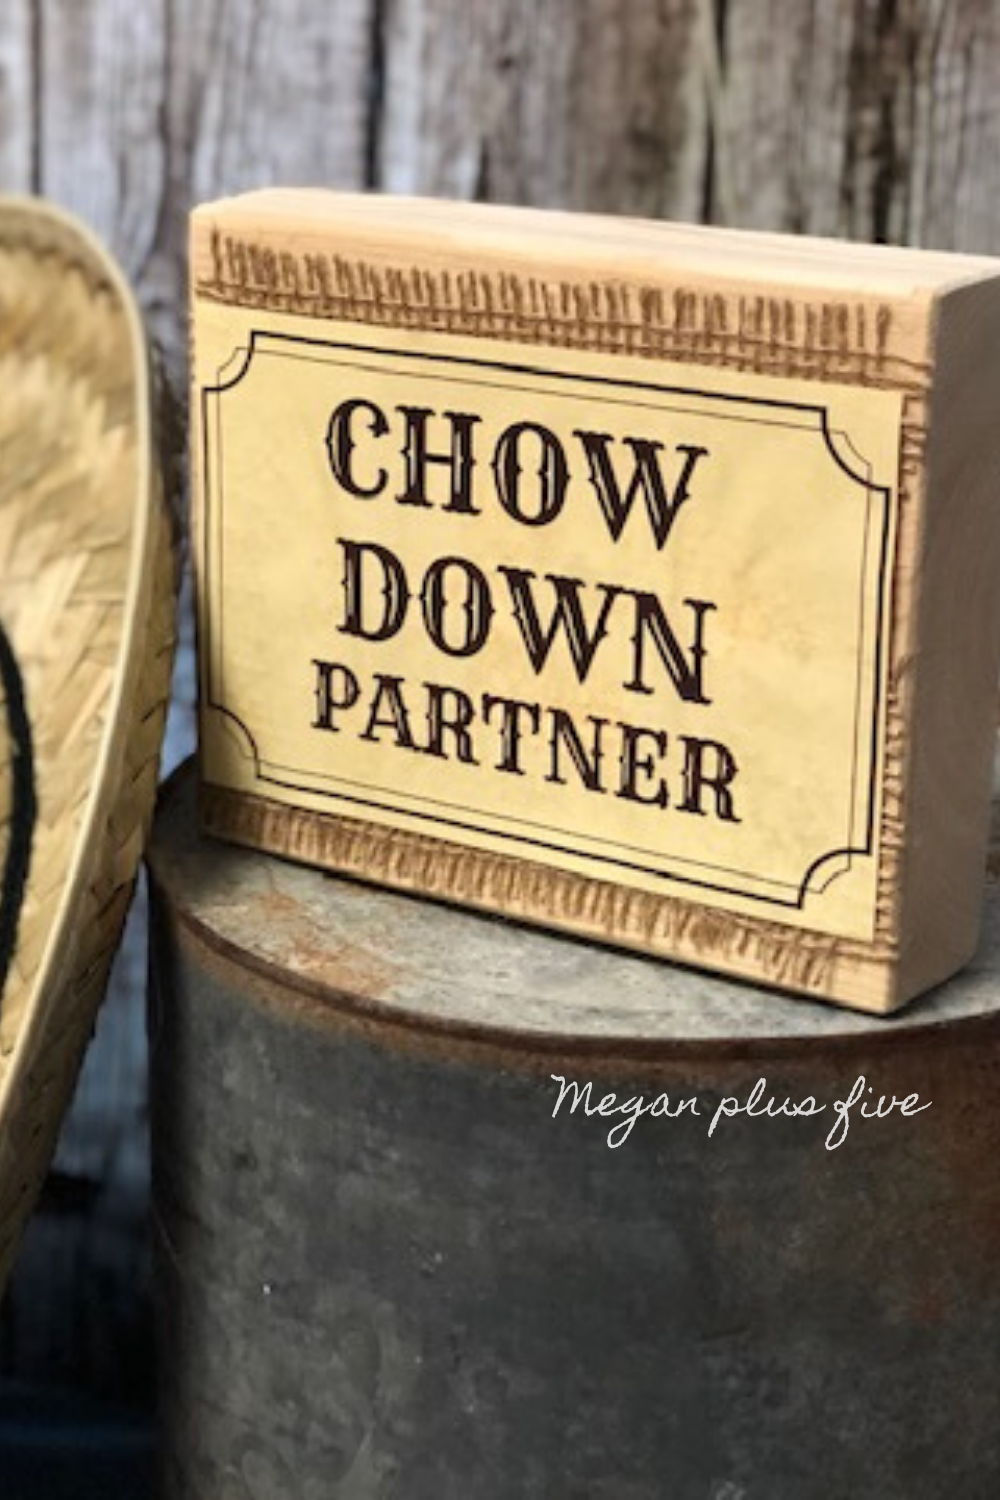 DIY western themed party table sign. Western signs for your wild west party. Chow down partner party decor easy wood sign